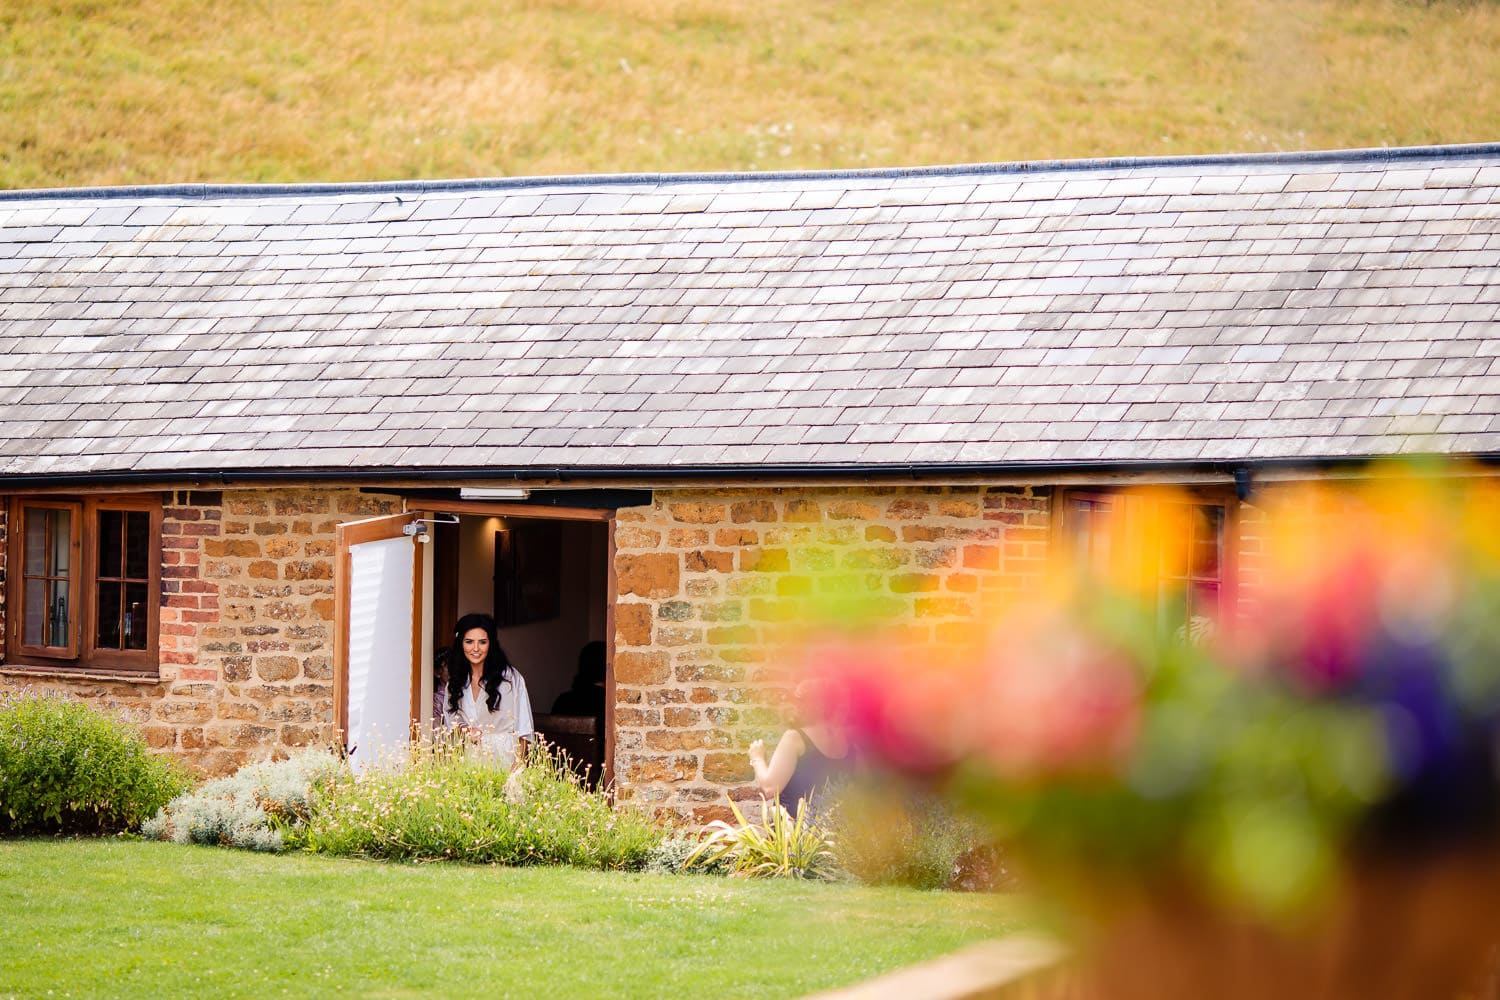 The Granary at Fawsley Wedding venue rated as midlands best wedding venue